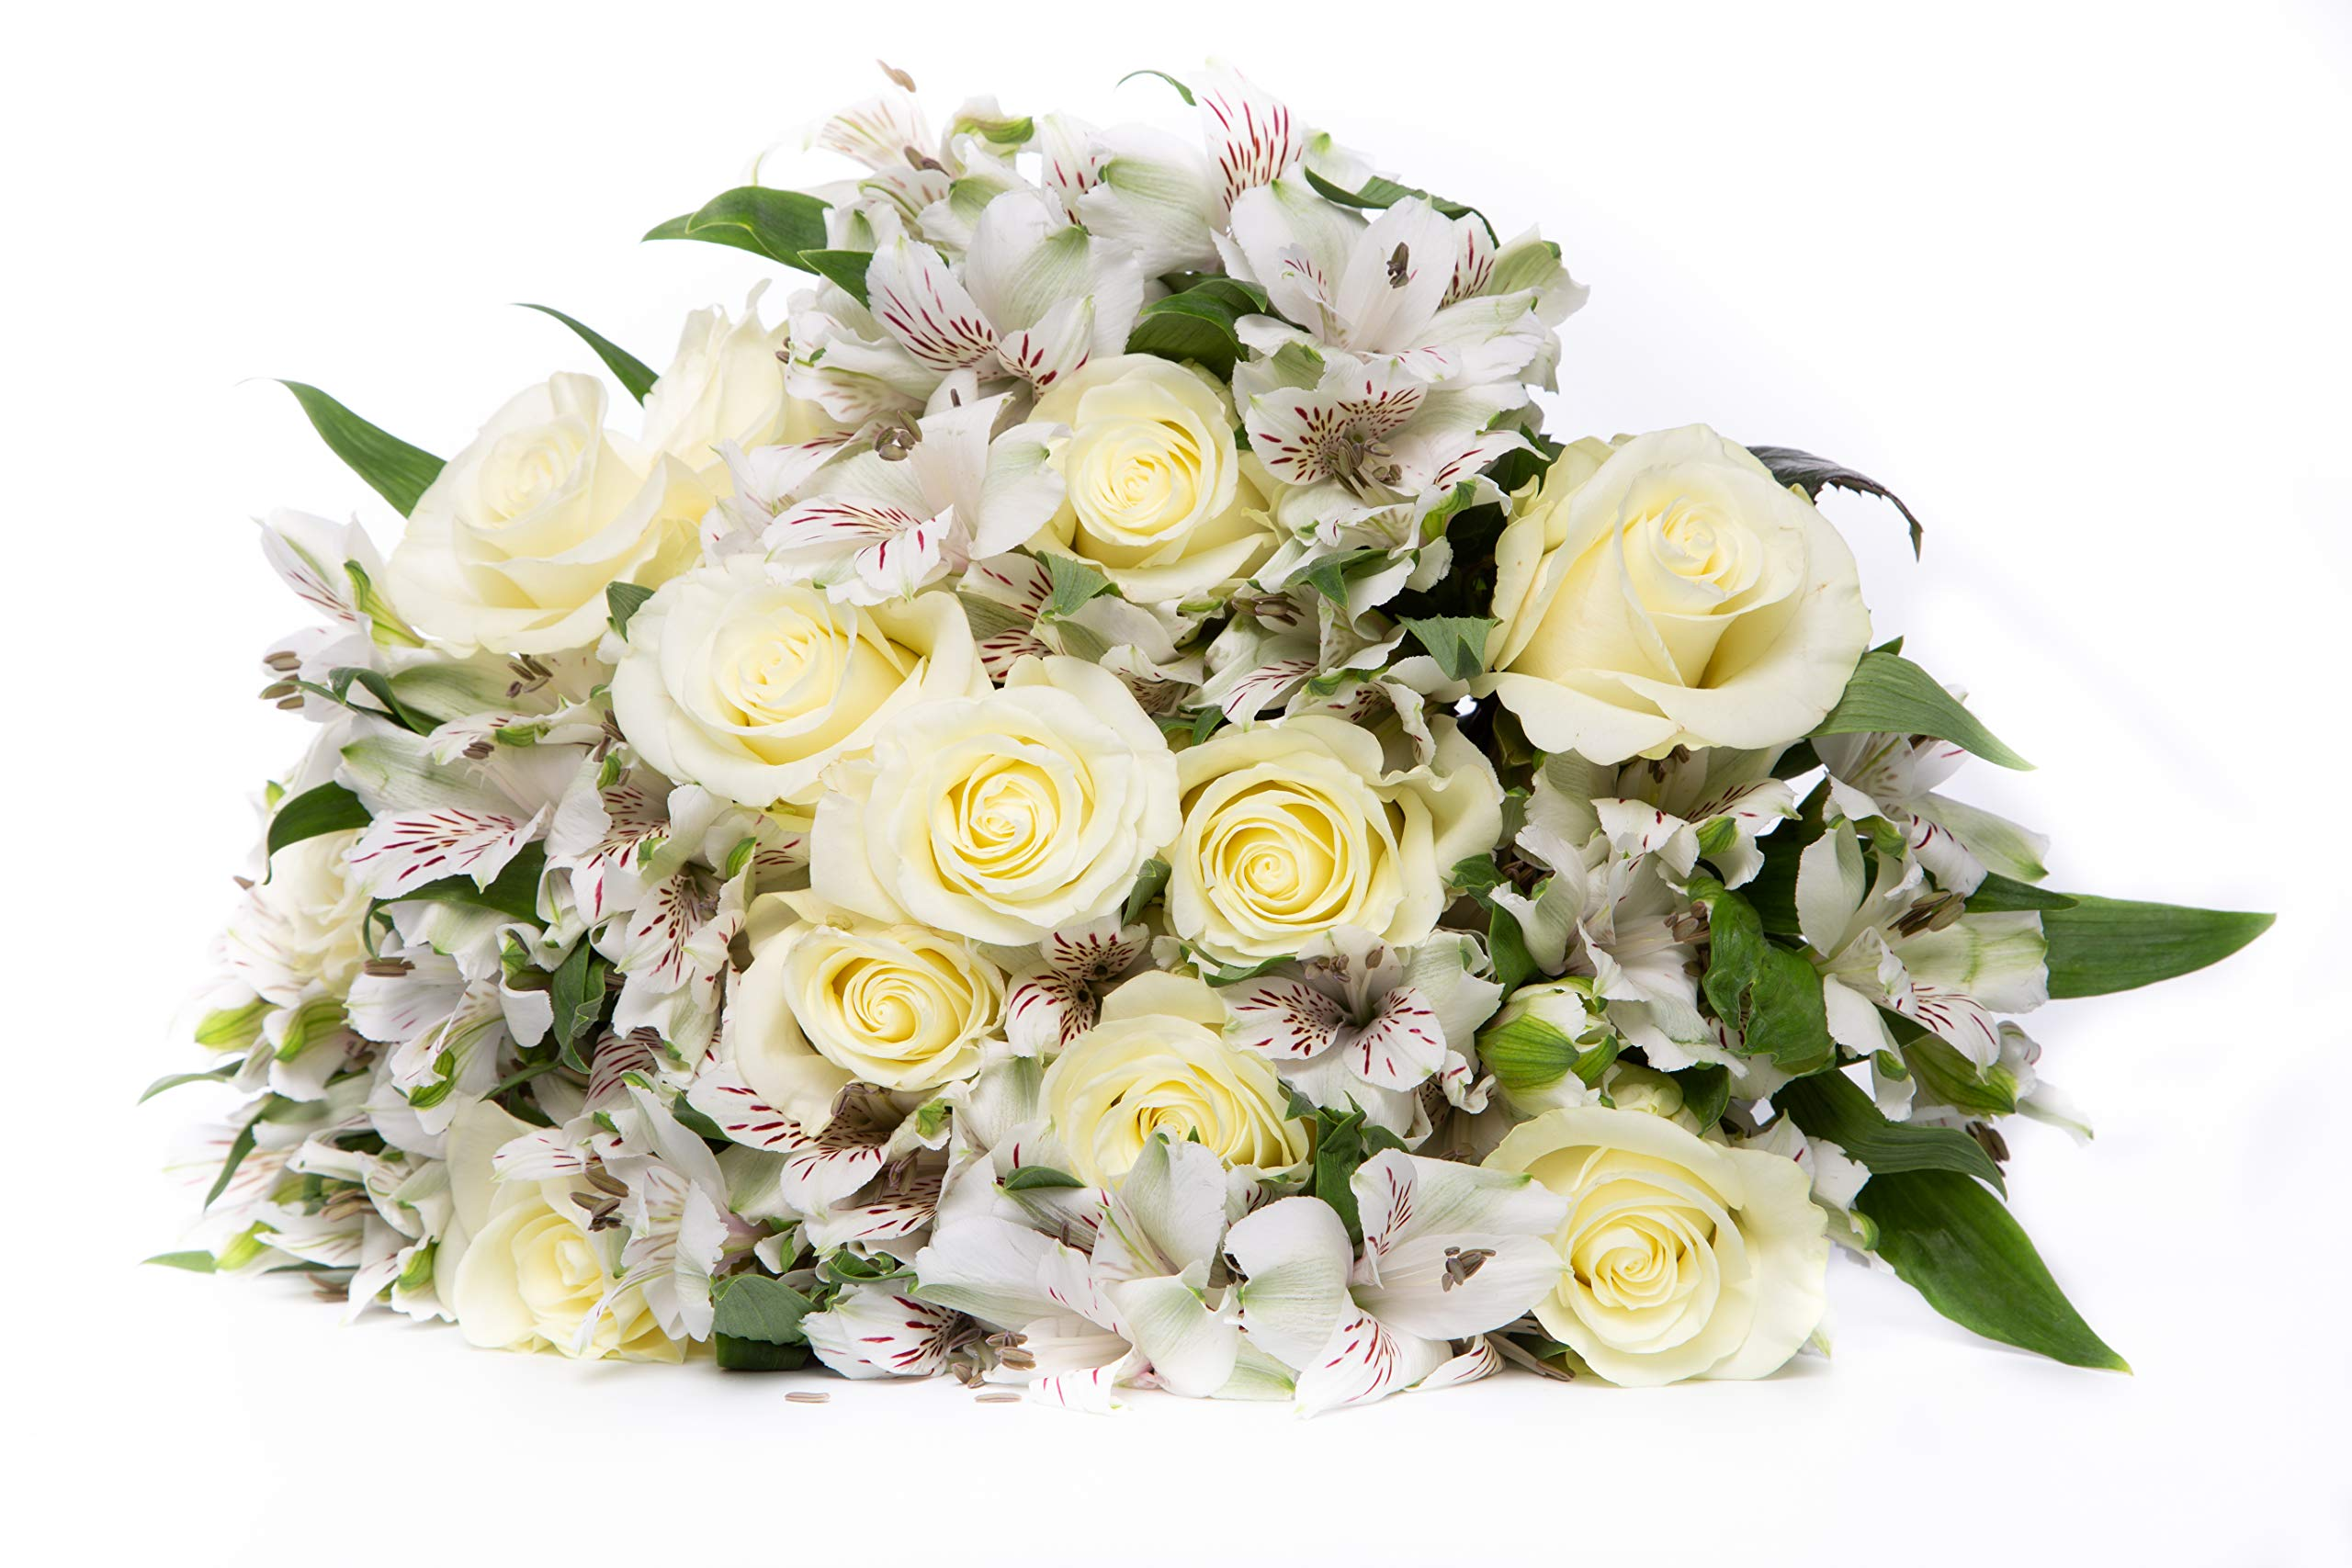 24 Stem White Rose White Alstroemeria Peruvian Lily Monochromatic White Bouquet with One Dozen Roses and One Dozen Princess Lilies for Centerpieces and Long Vase Life, Vase Not Included